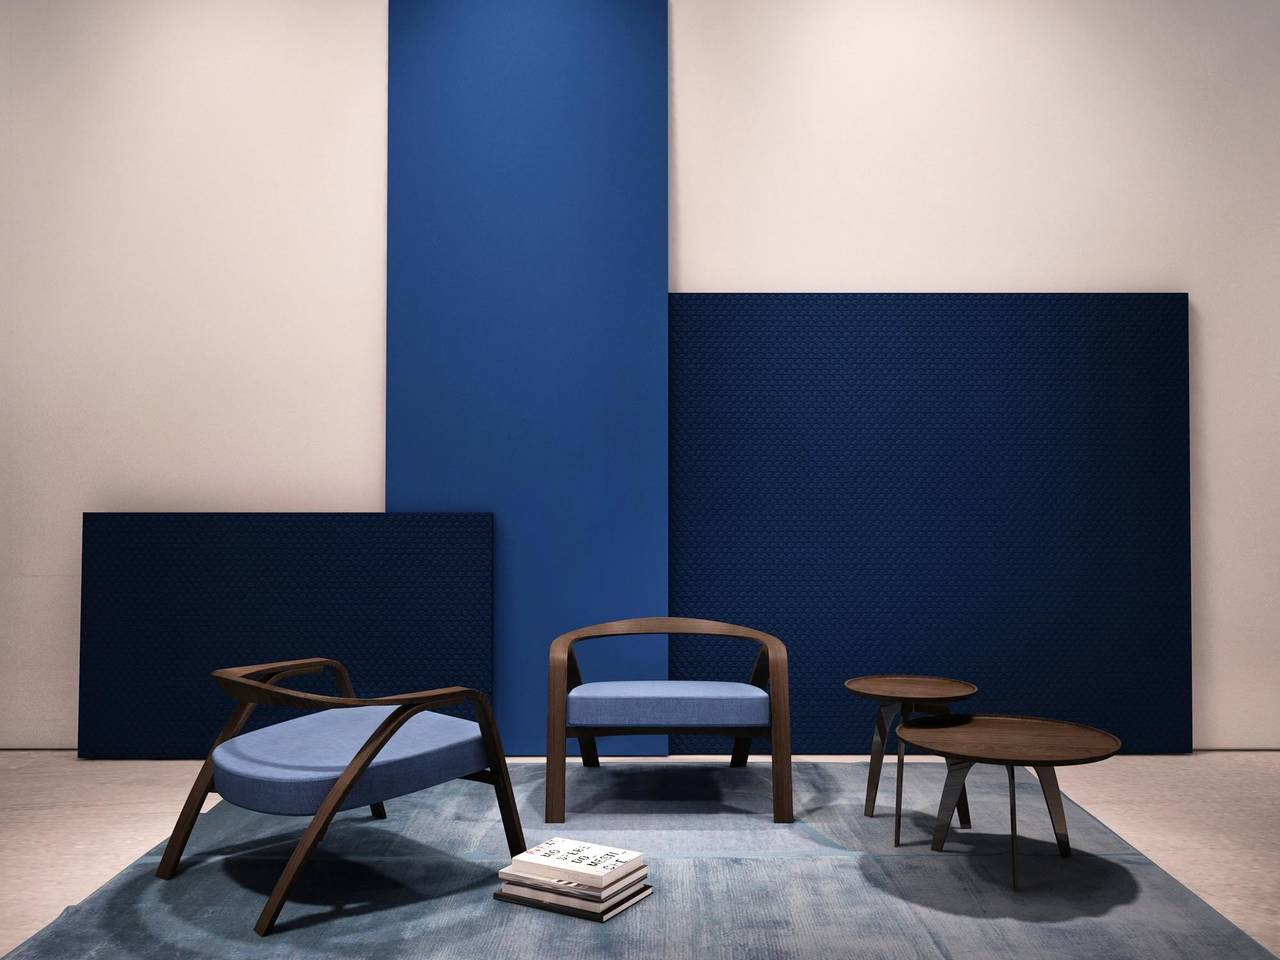 Poltroncina Grillo, design Parisotto + Formenton per True Design